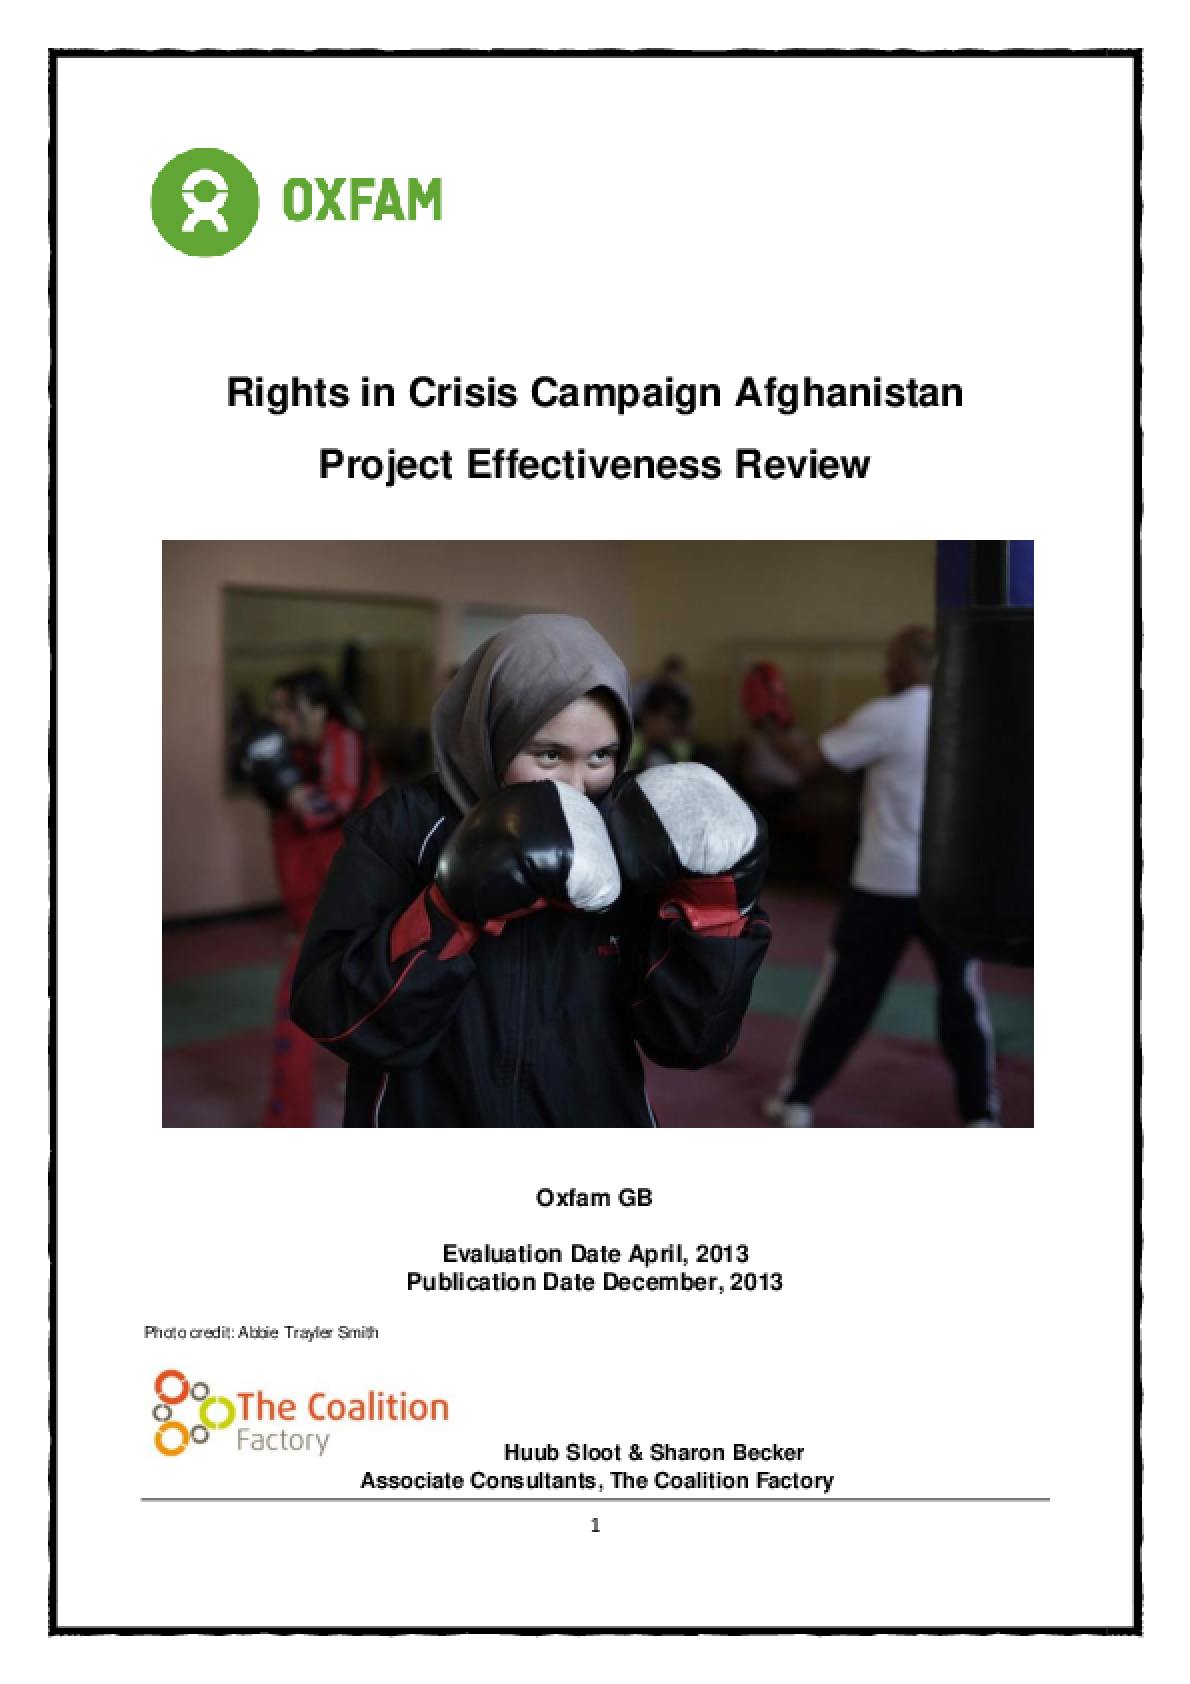 Effectiveness Review: Rights in Crisis Campaign Afghanistan